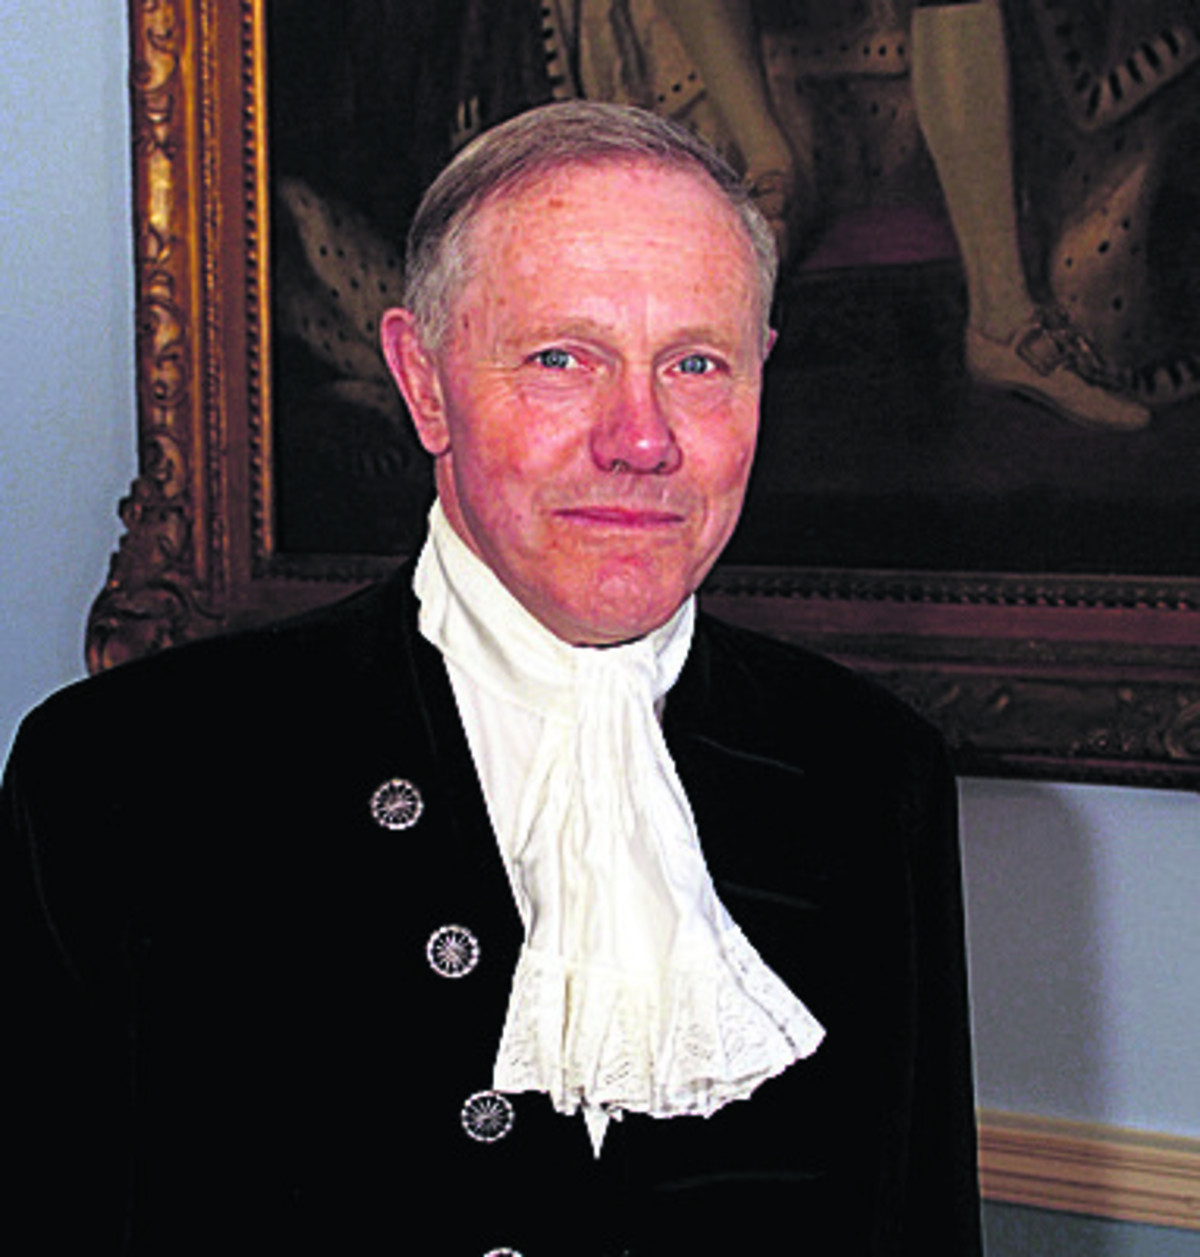 Peter Addington is Wiltshire's new High Sheriff